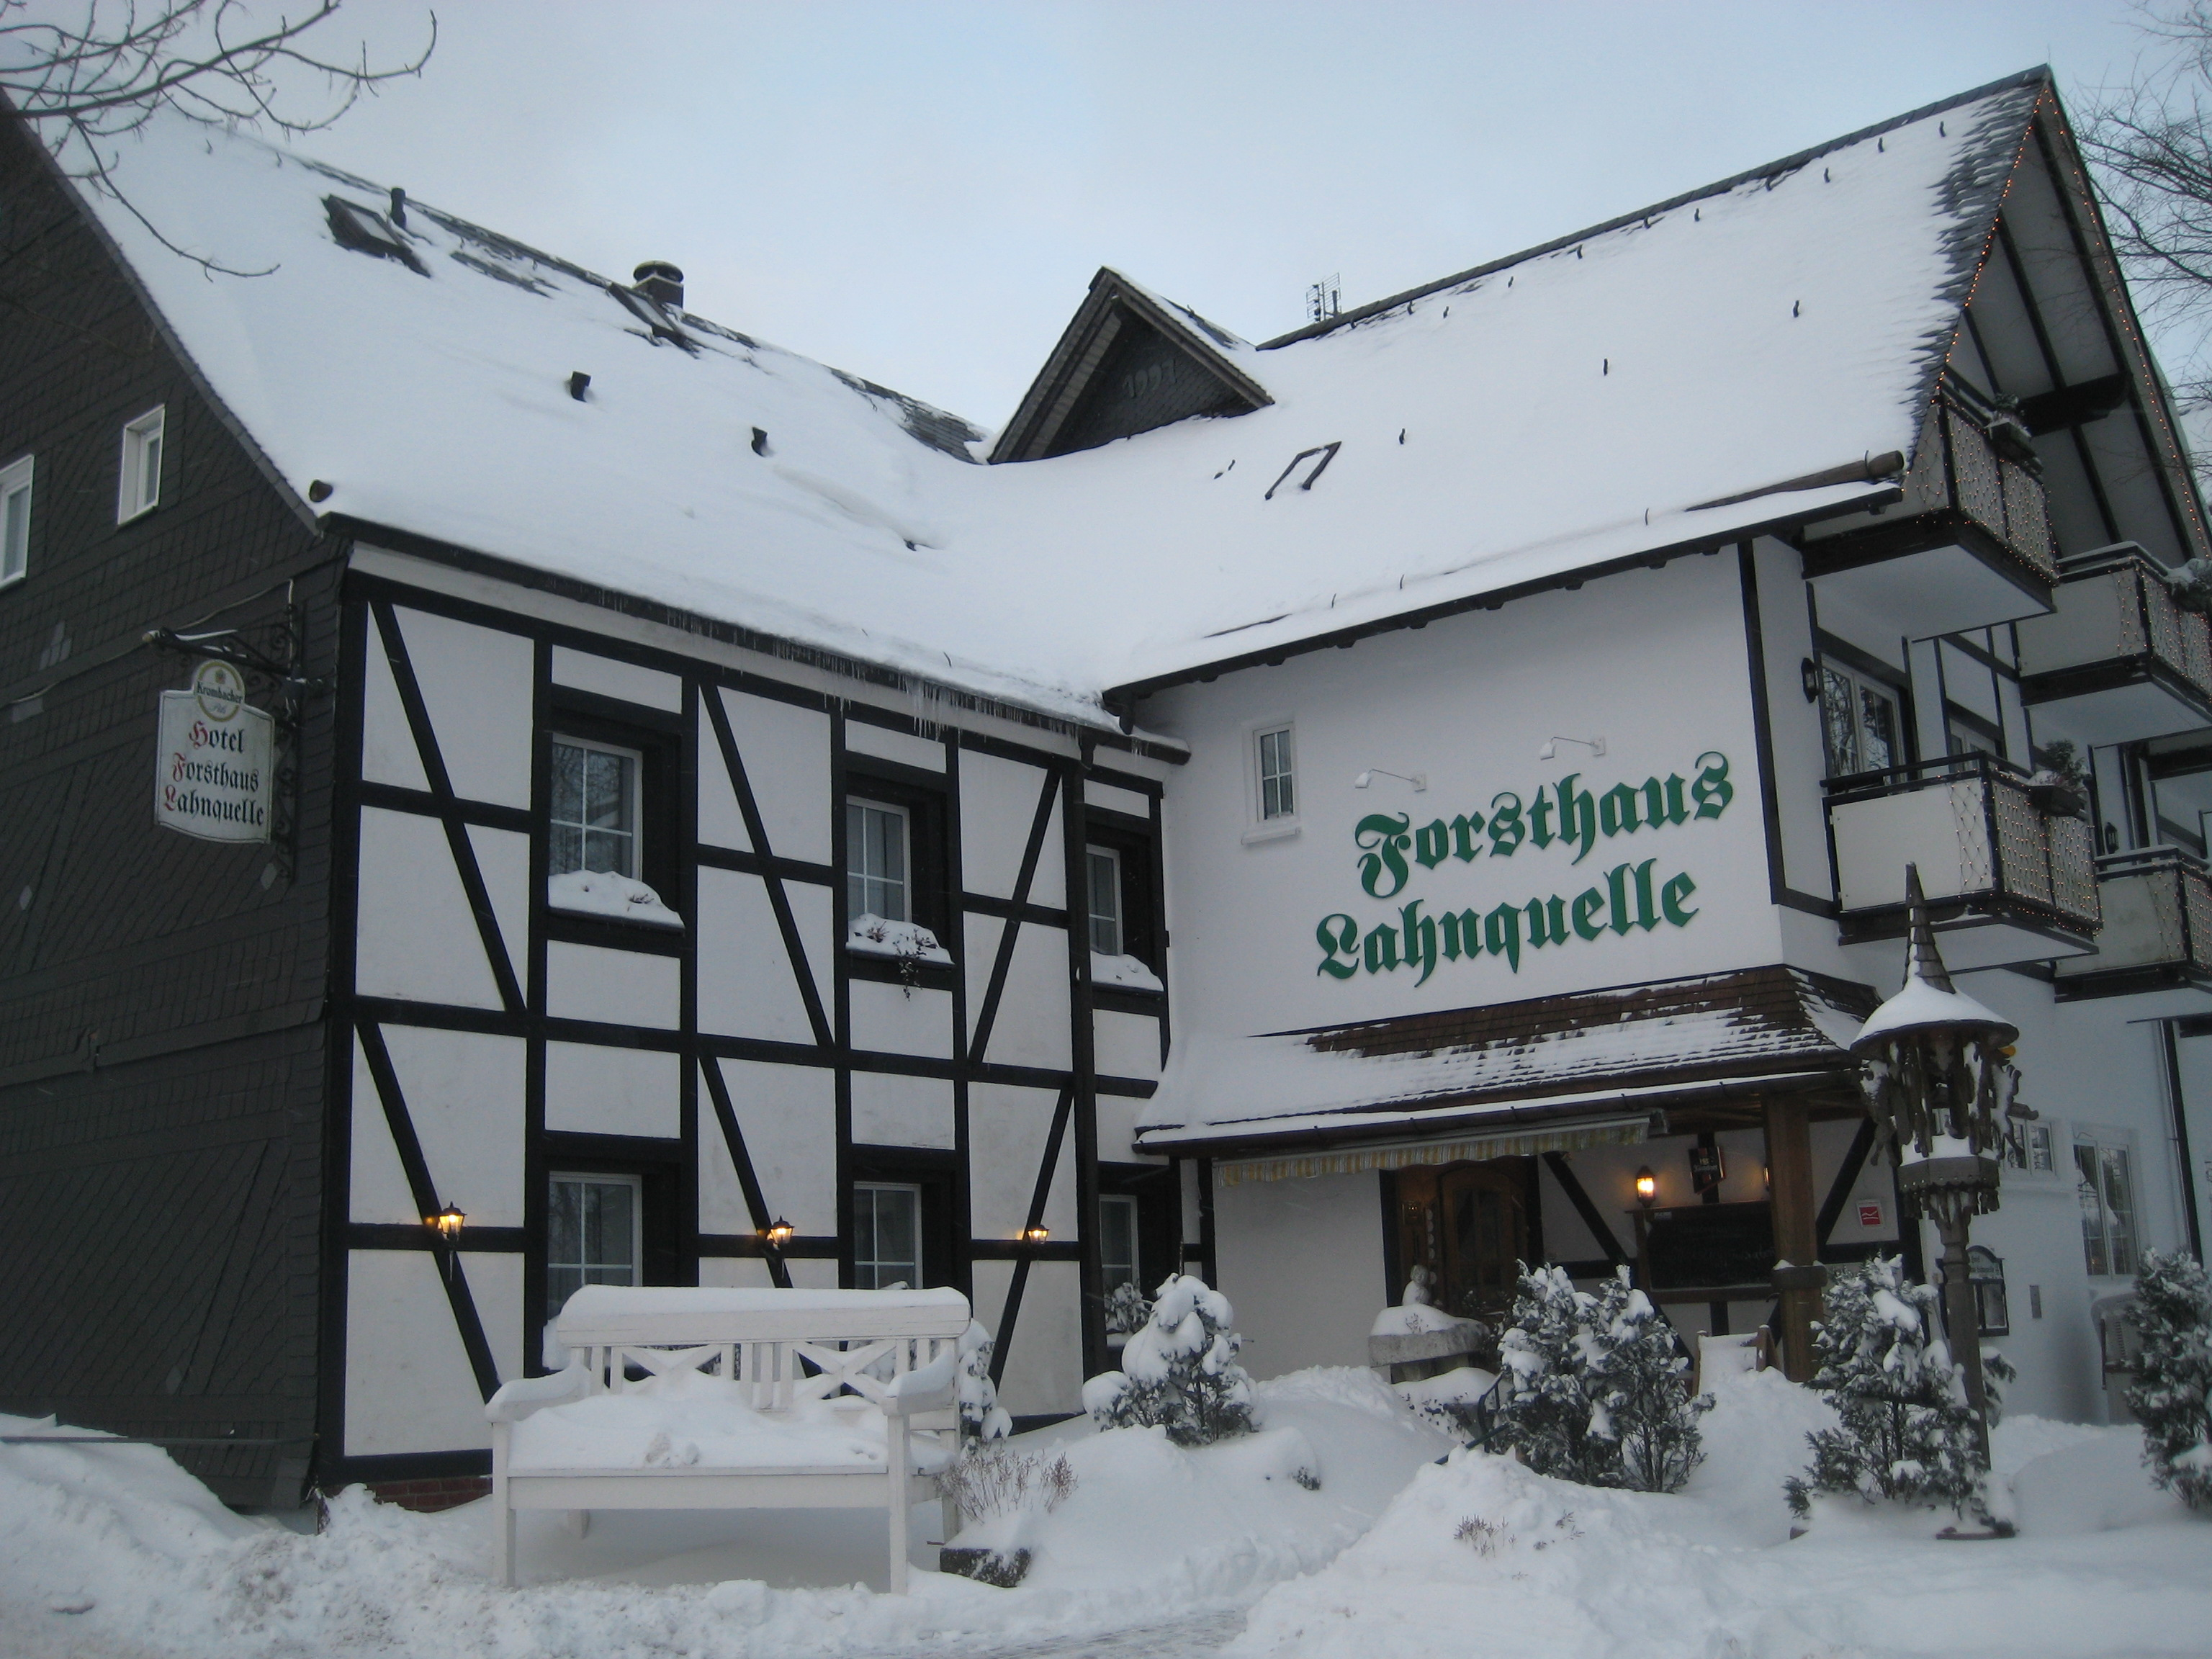 Hotel Forsthaus Lahnquelle In Netphen Bei Tv Plafon Roof